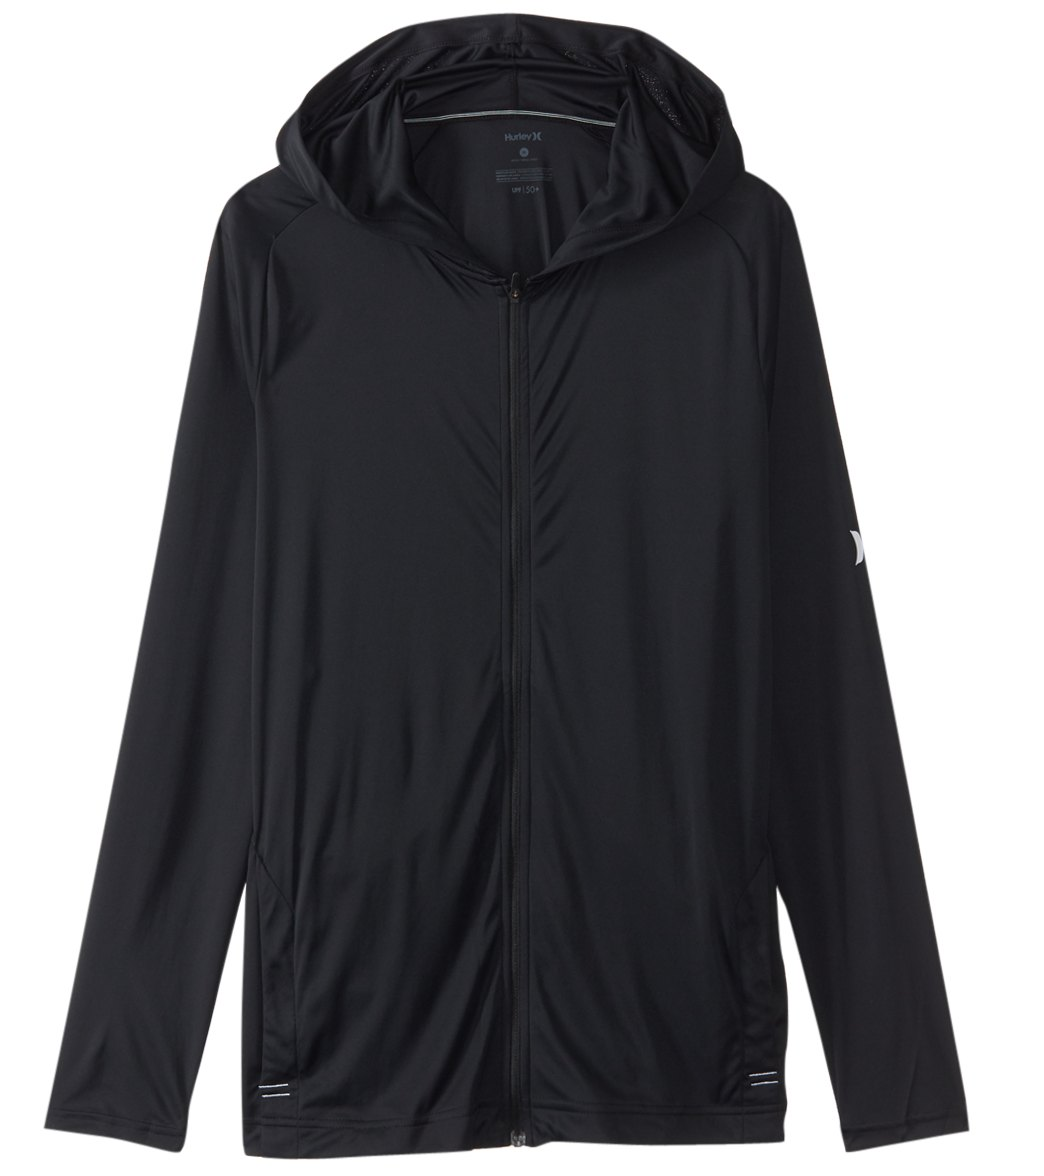 0881a89c Hurley Men's Icon Quick Dry Front Zip Hooded Long Sleeve Surf Shirt at  SwimOutlet.com